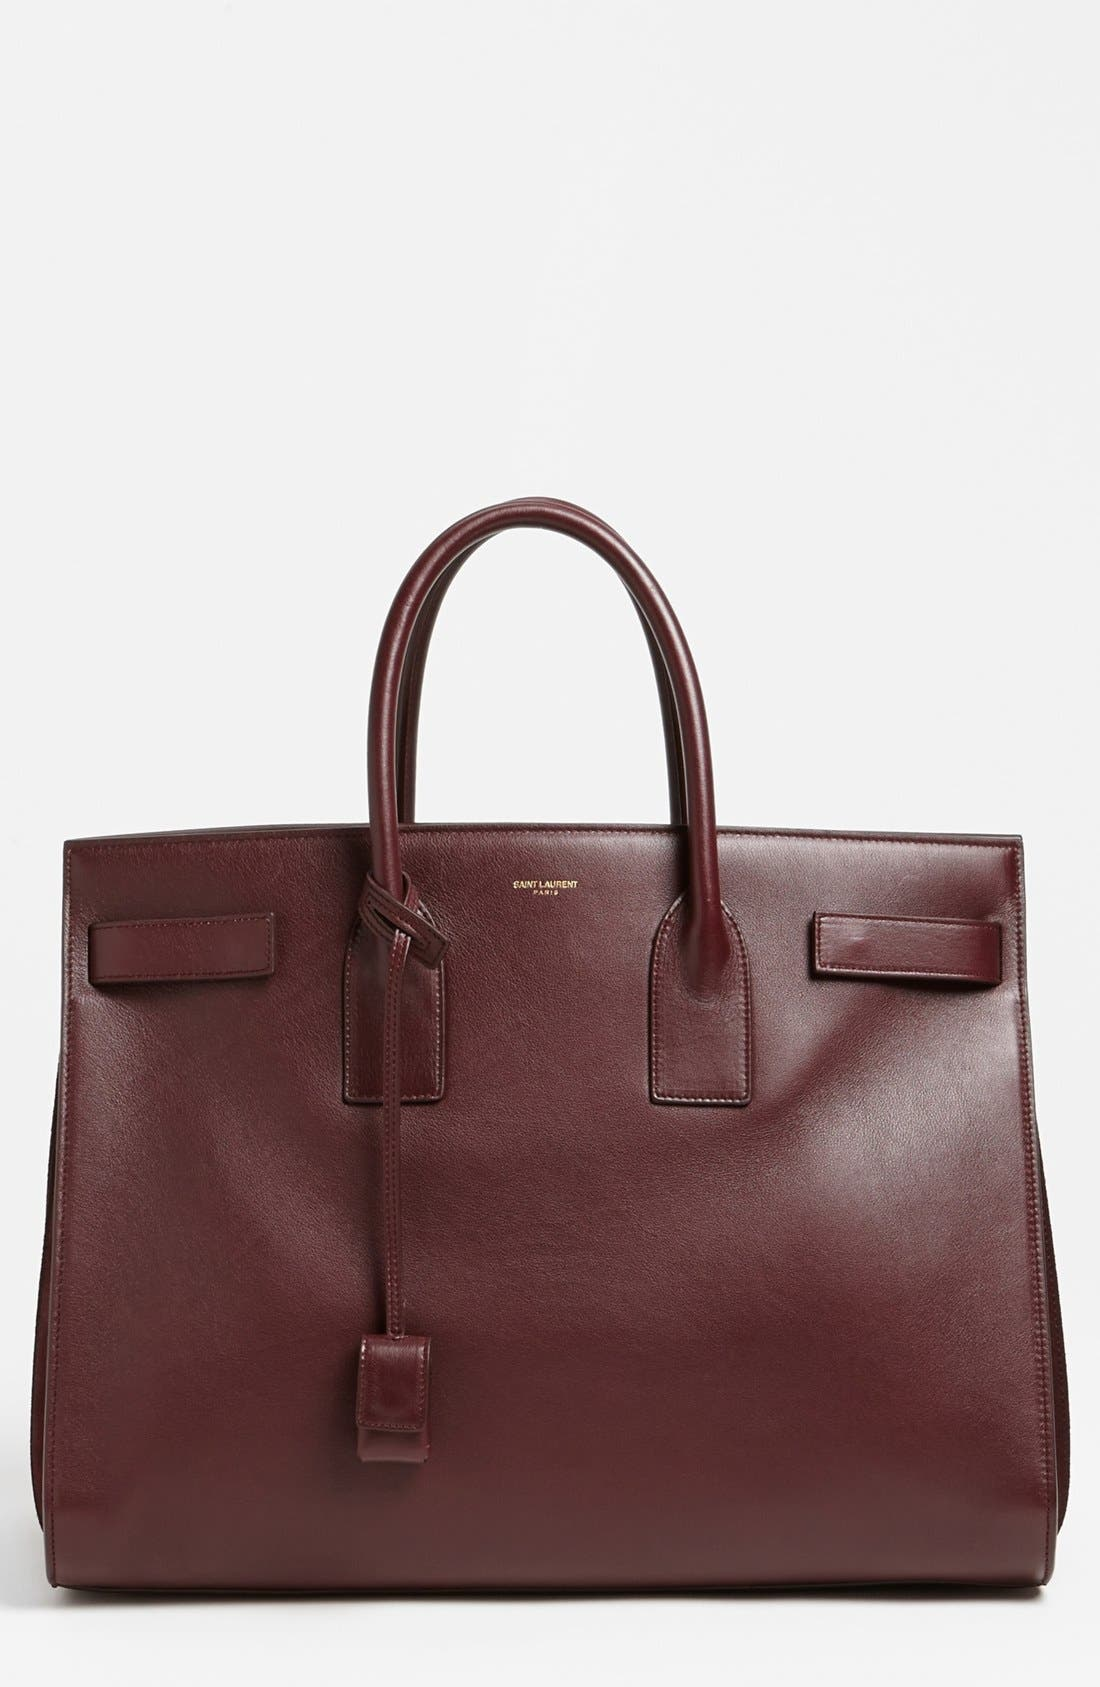 Alternate Image 1 Selected - Saint Laurent 'Sac de Jour' Leather Tote